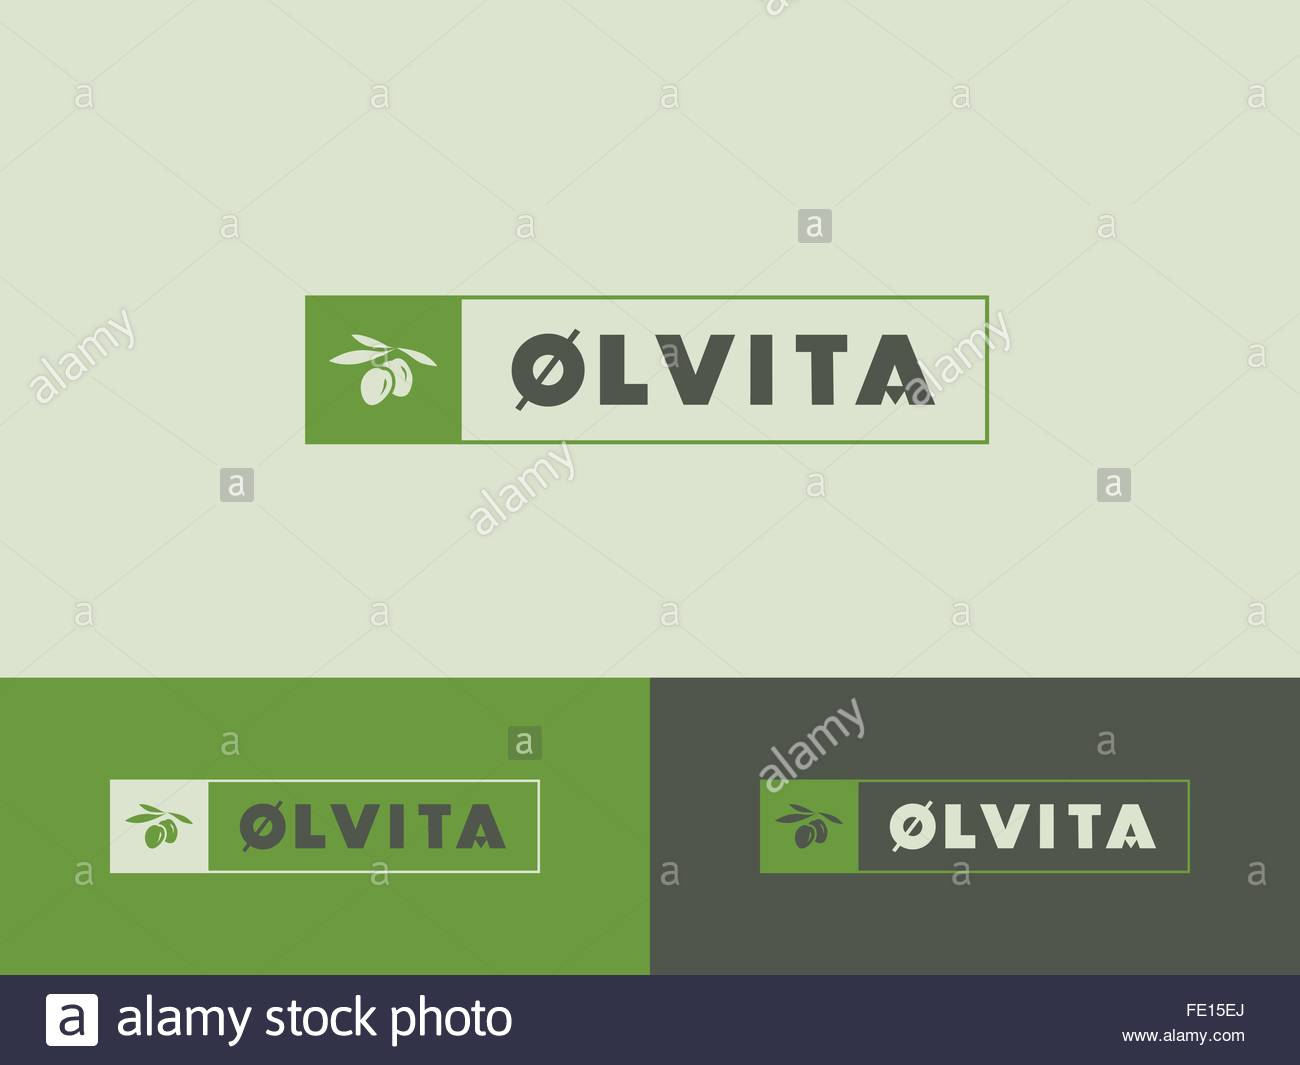 01 Food logo - Olives or olive oil branding - Stock Vector